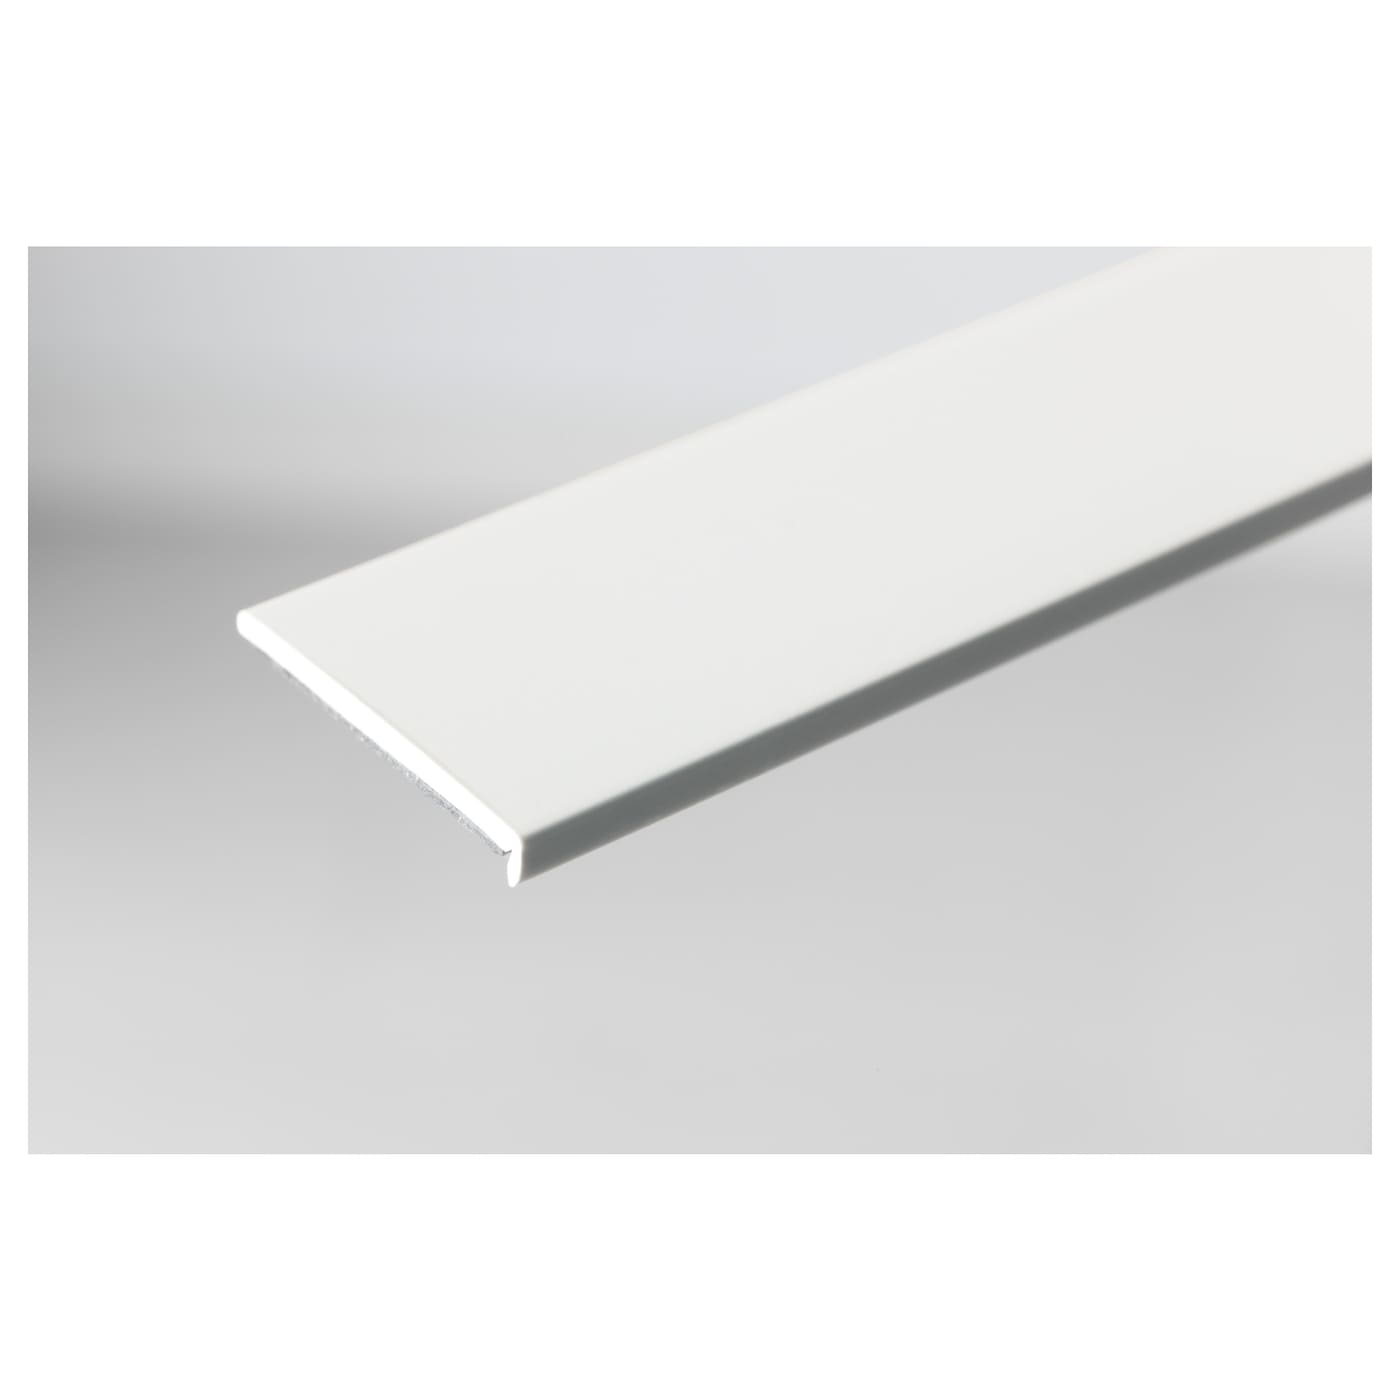 IKEA FÖRBÄTTRA cover strip and fittings